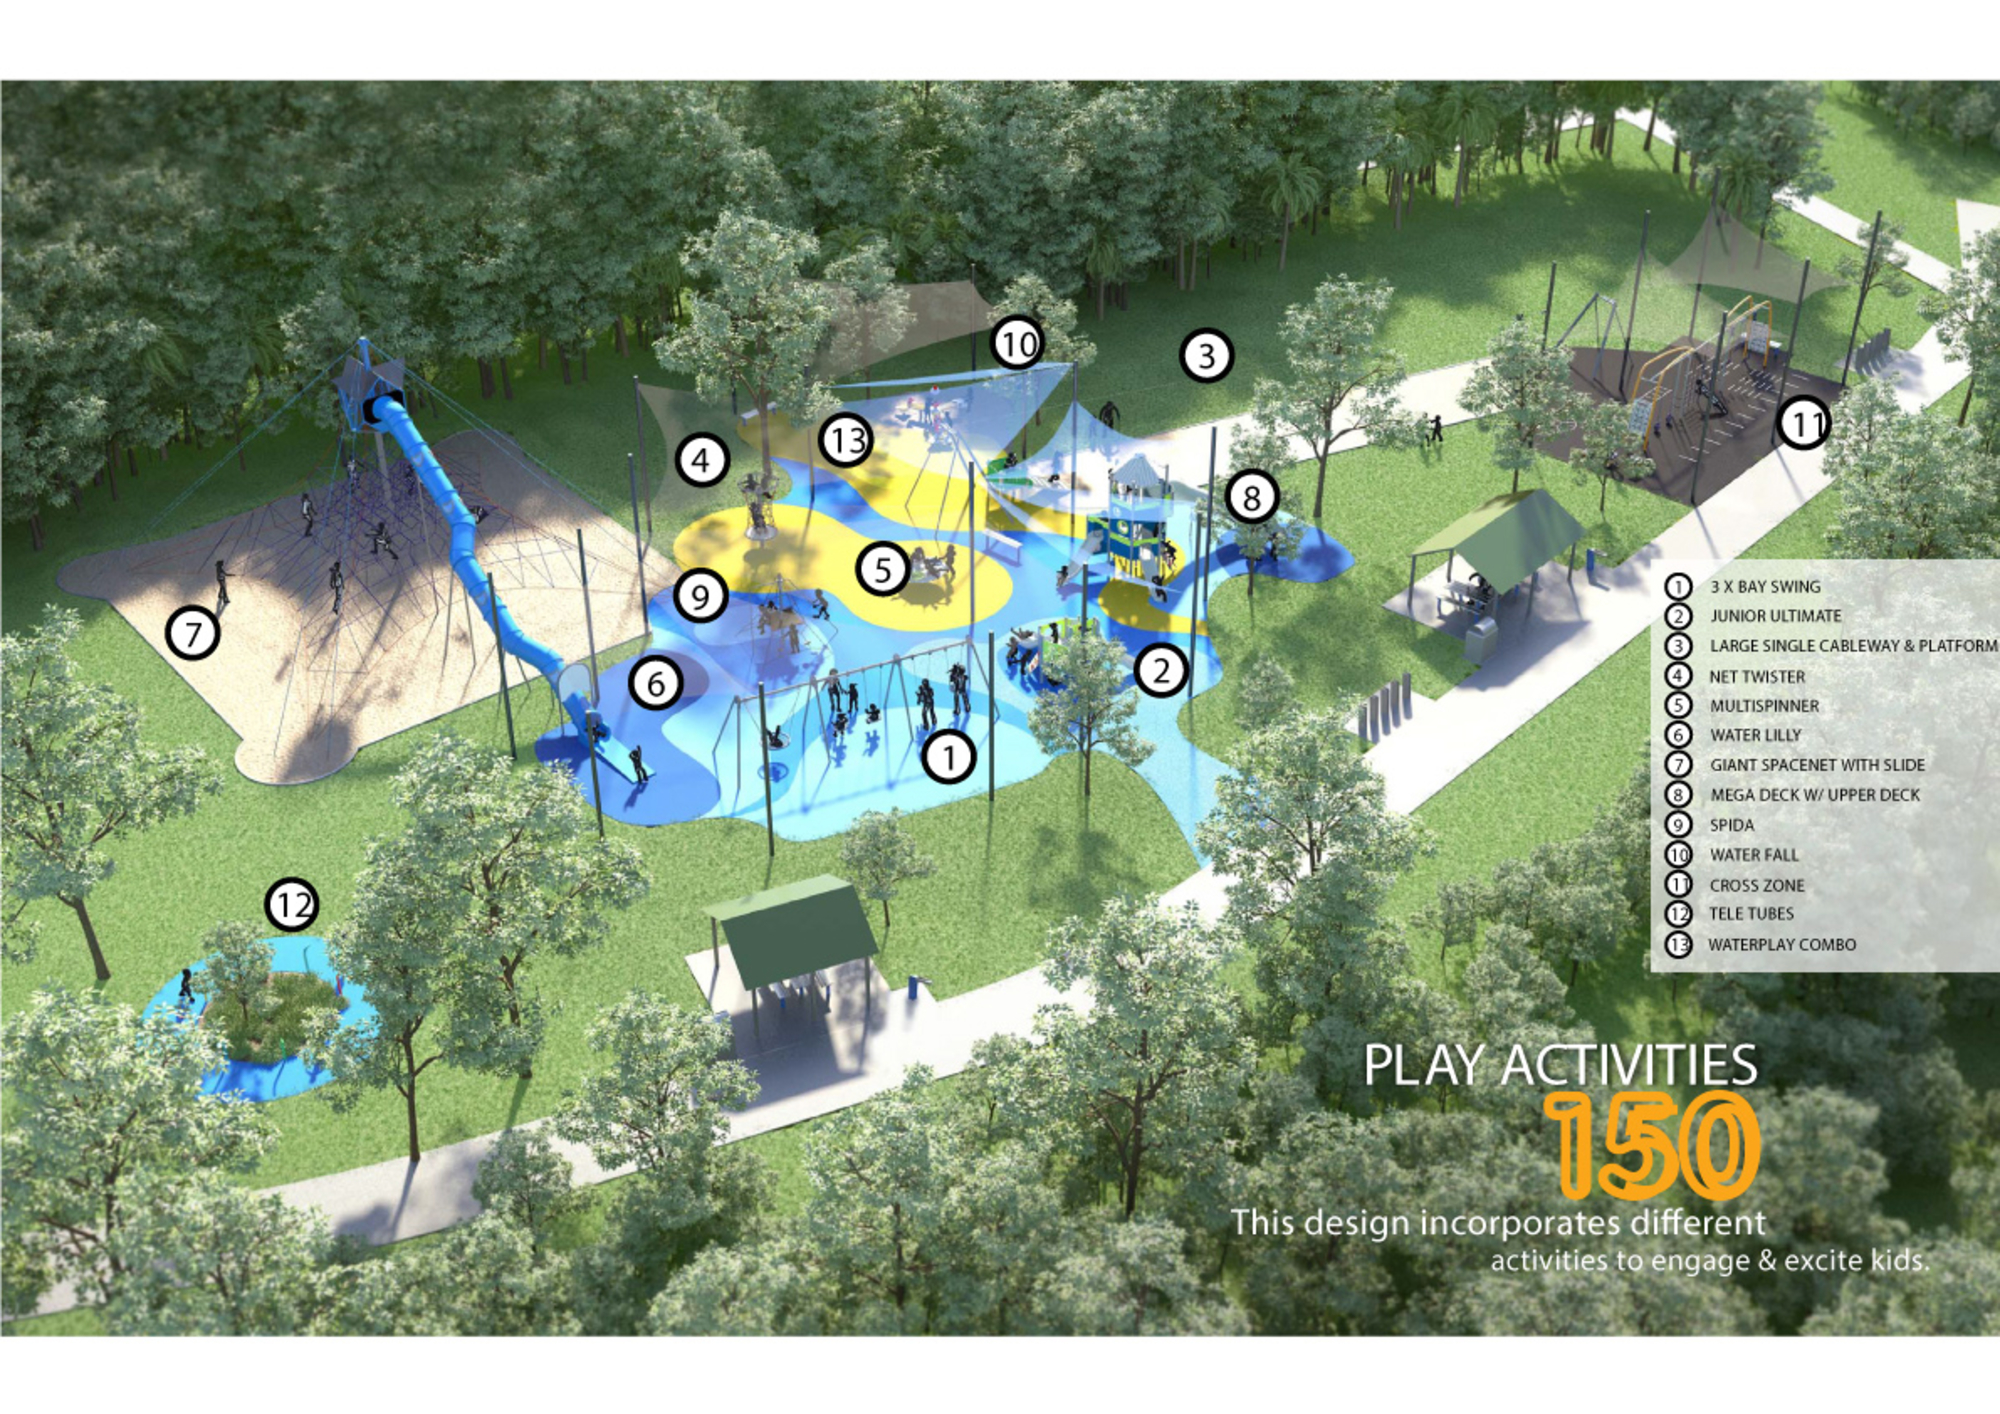 bicentennial play space design and artists impression with diagram of all equipment